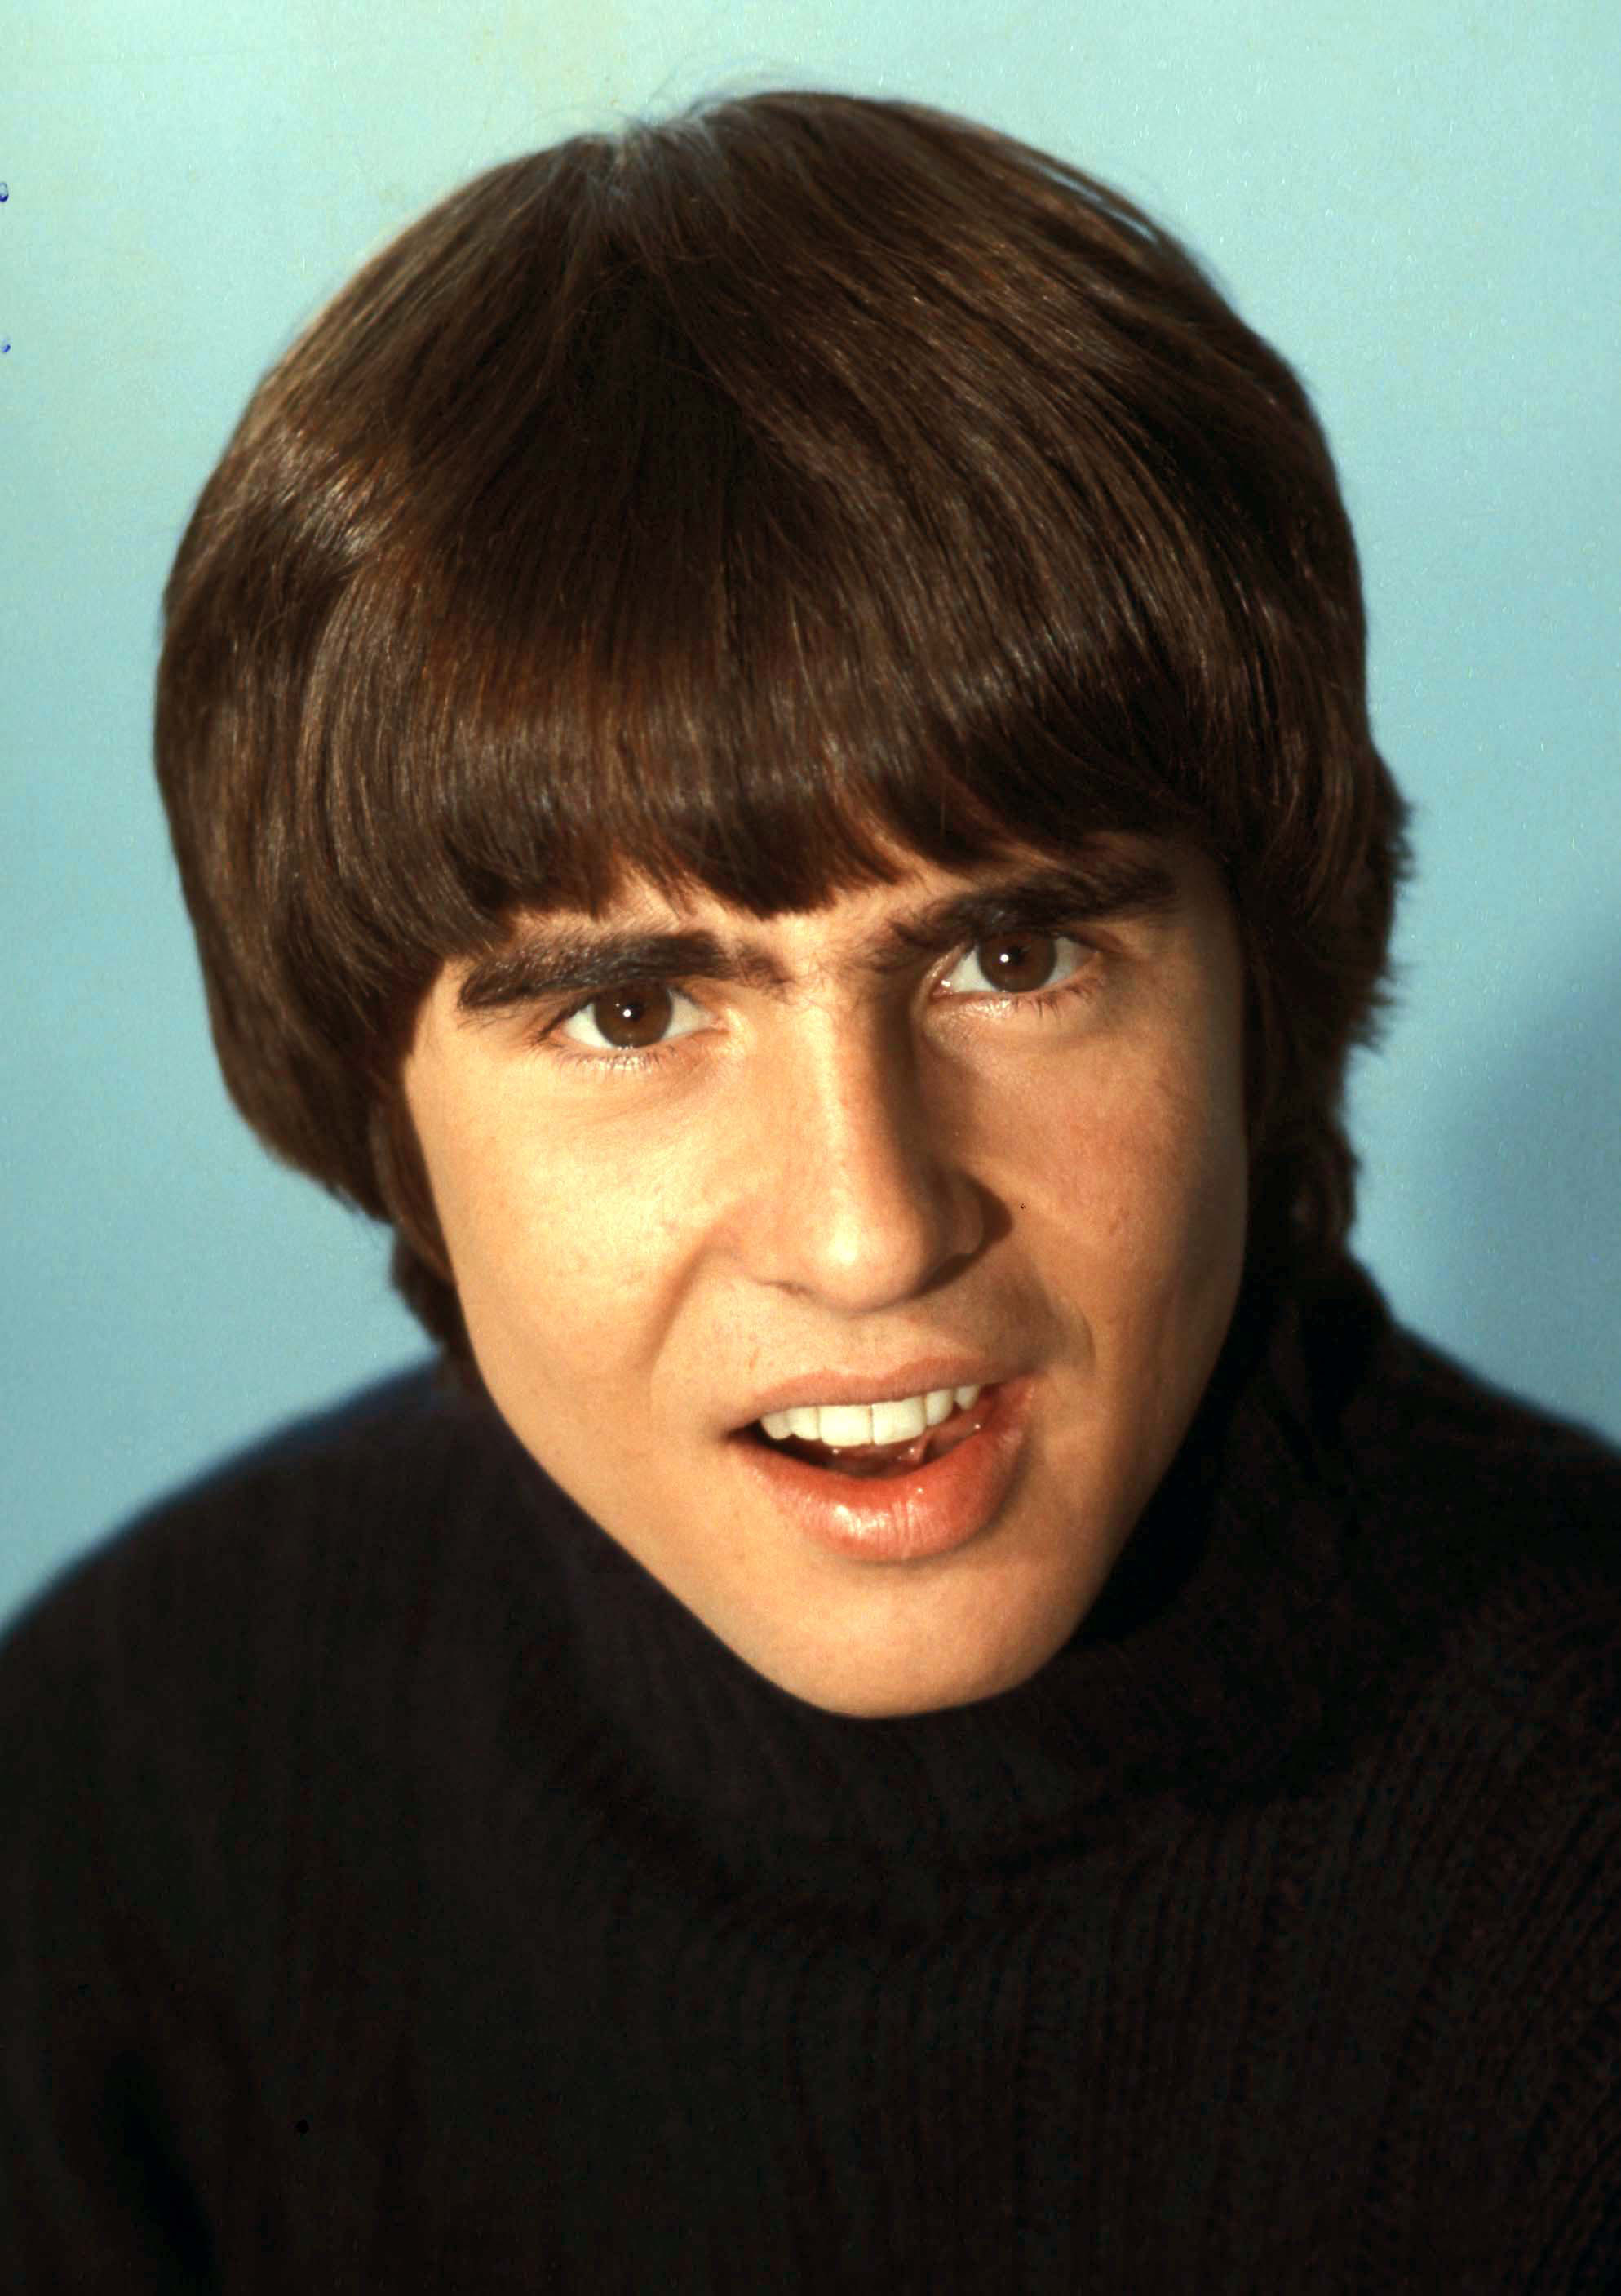 Davy Jones died Feb. 29, 2012 of a heart attack. Here's a look back at his life in pictures.